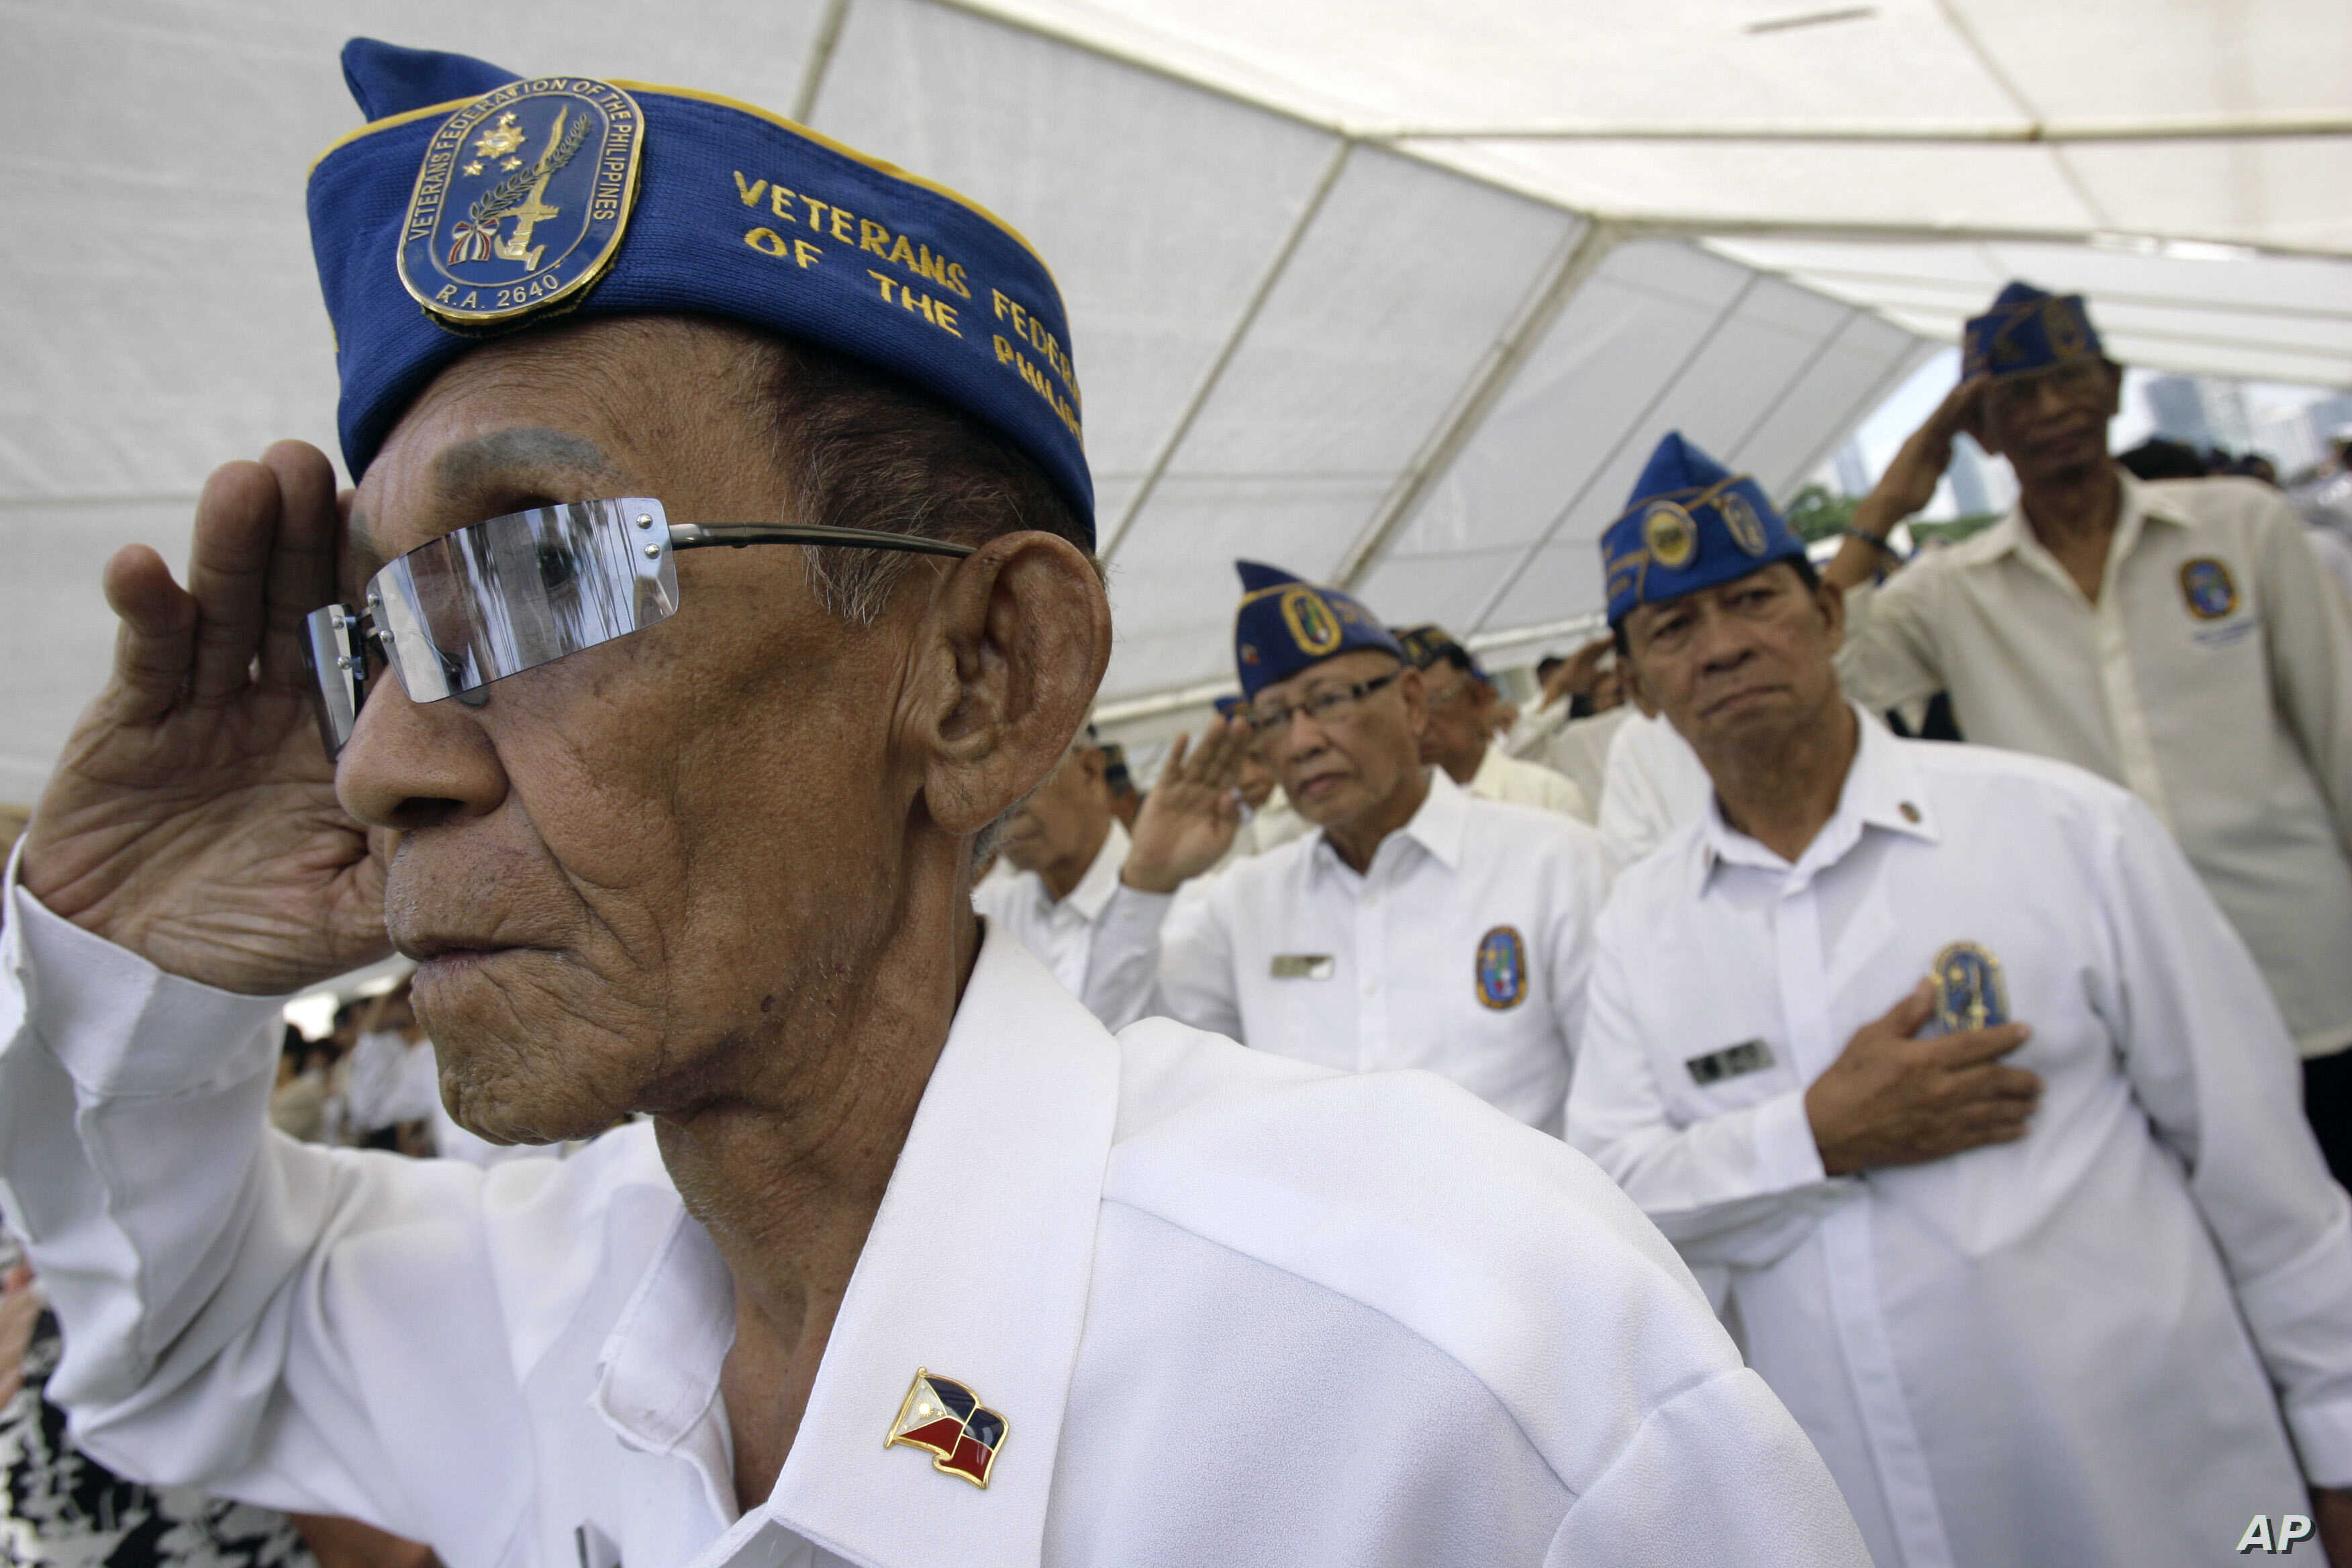 FILE - Filipino veterans salute during ceremonies for U.S. Memorial Day at the American Cemetery in suburban Taguig, south of Manila, Philippines, May 24, 2009.